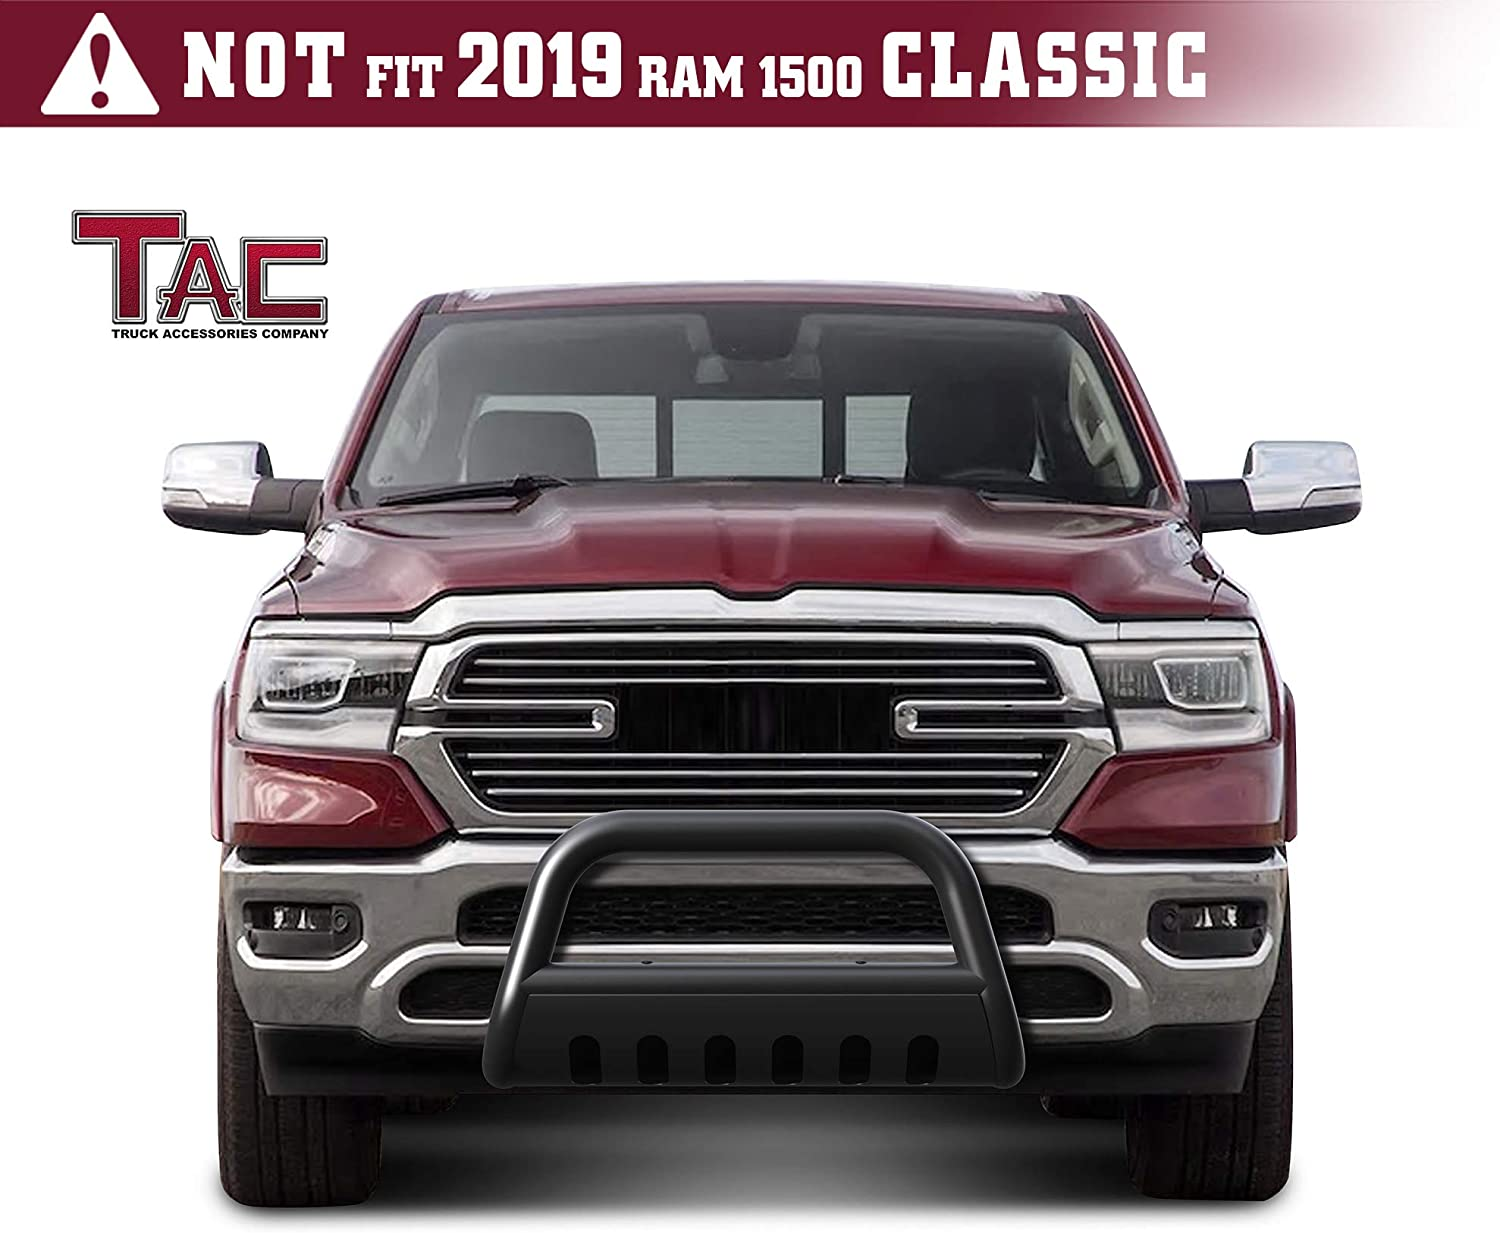 amazon com tac bull bar fit 2019 2020 dodge ram 1500 excluding 2019 2020 ram 1500 classic truck pickup 3 black front bumper grille guard brush bumper guard with skid plate off road exterior accessories automotive tac bull bar fit 2019 2020 dodge ram 1500 excluding 2019 2020 ram 1500 classic truck pickup 3 black front bumper grille guard brush bumper guard